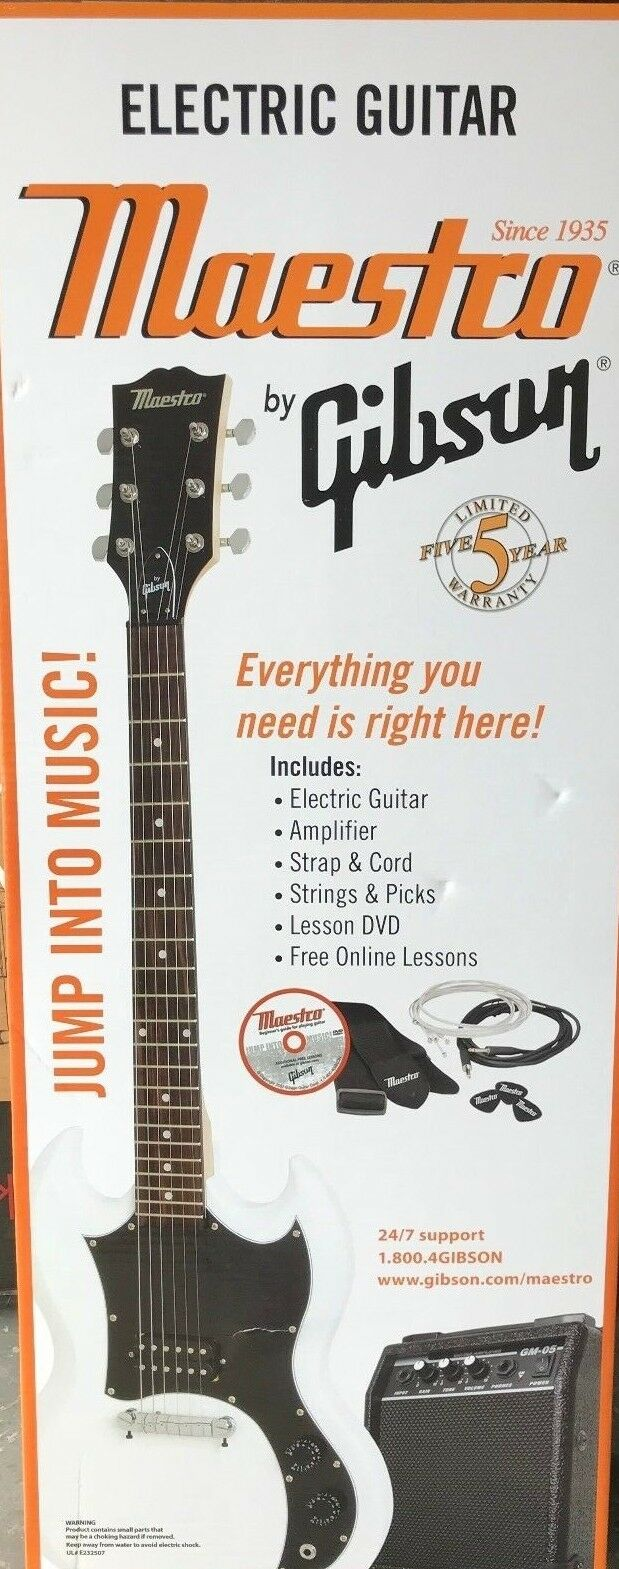 mesgwhch double cutaway electric guitar kit white